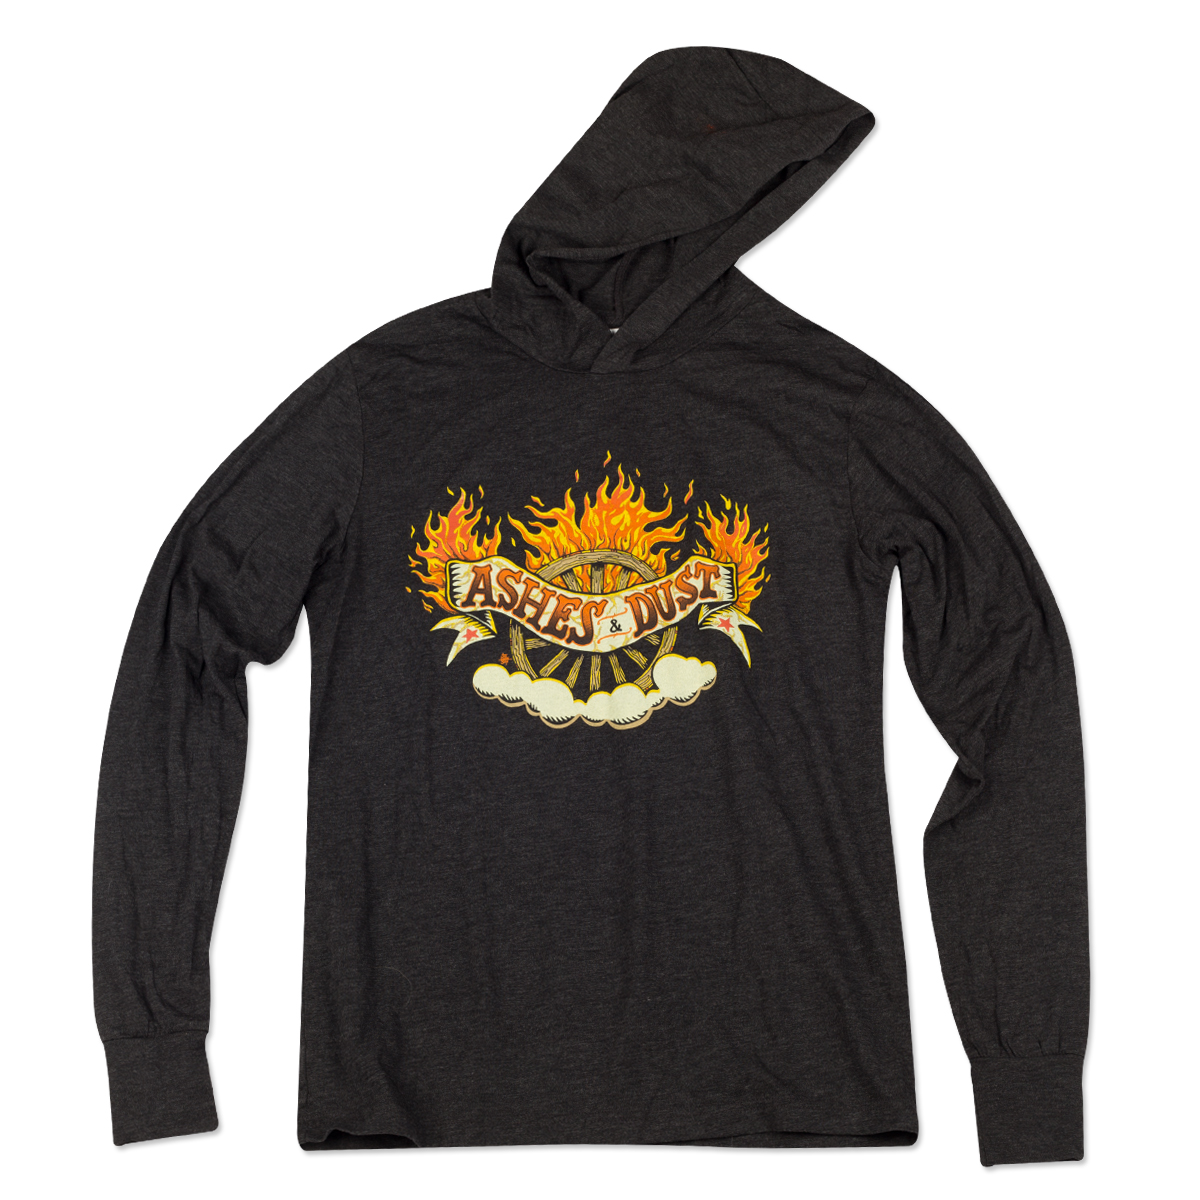 Ashes and Dust Hoodie